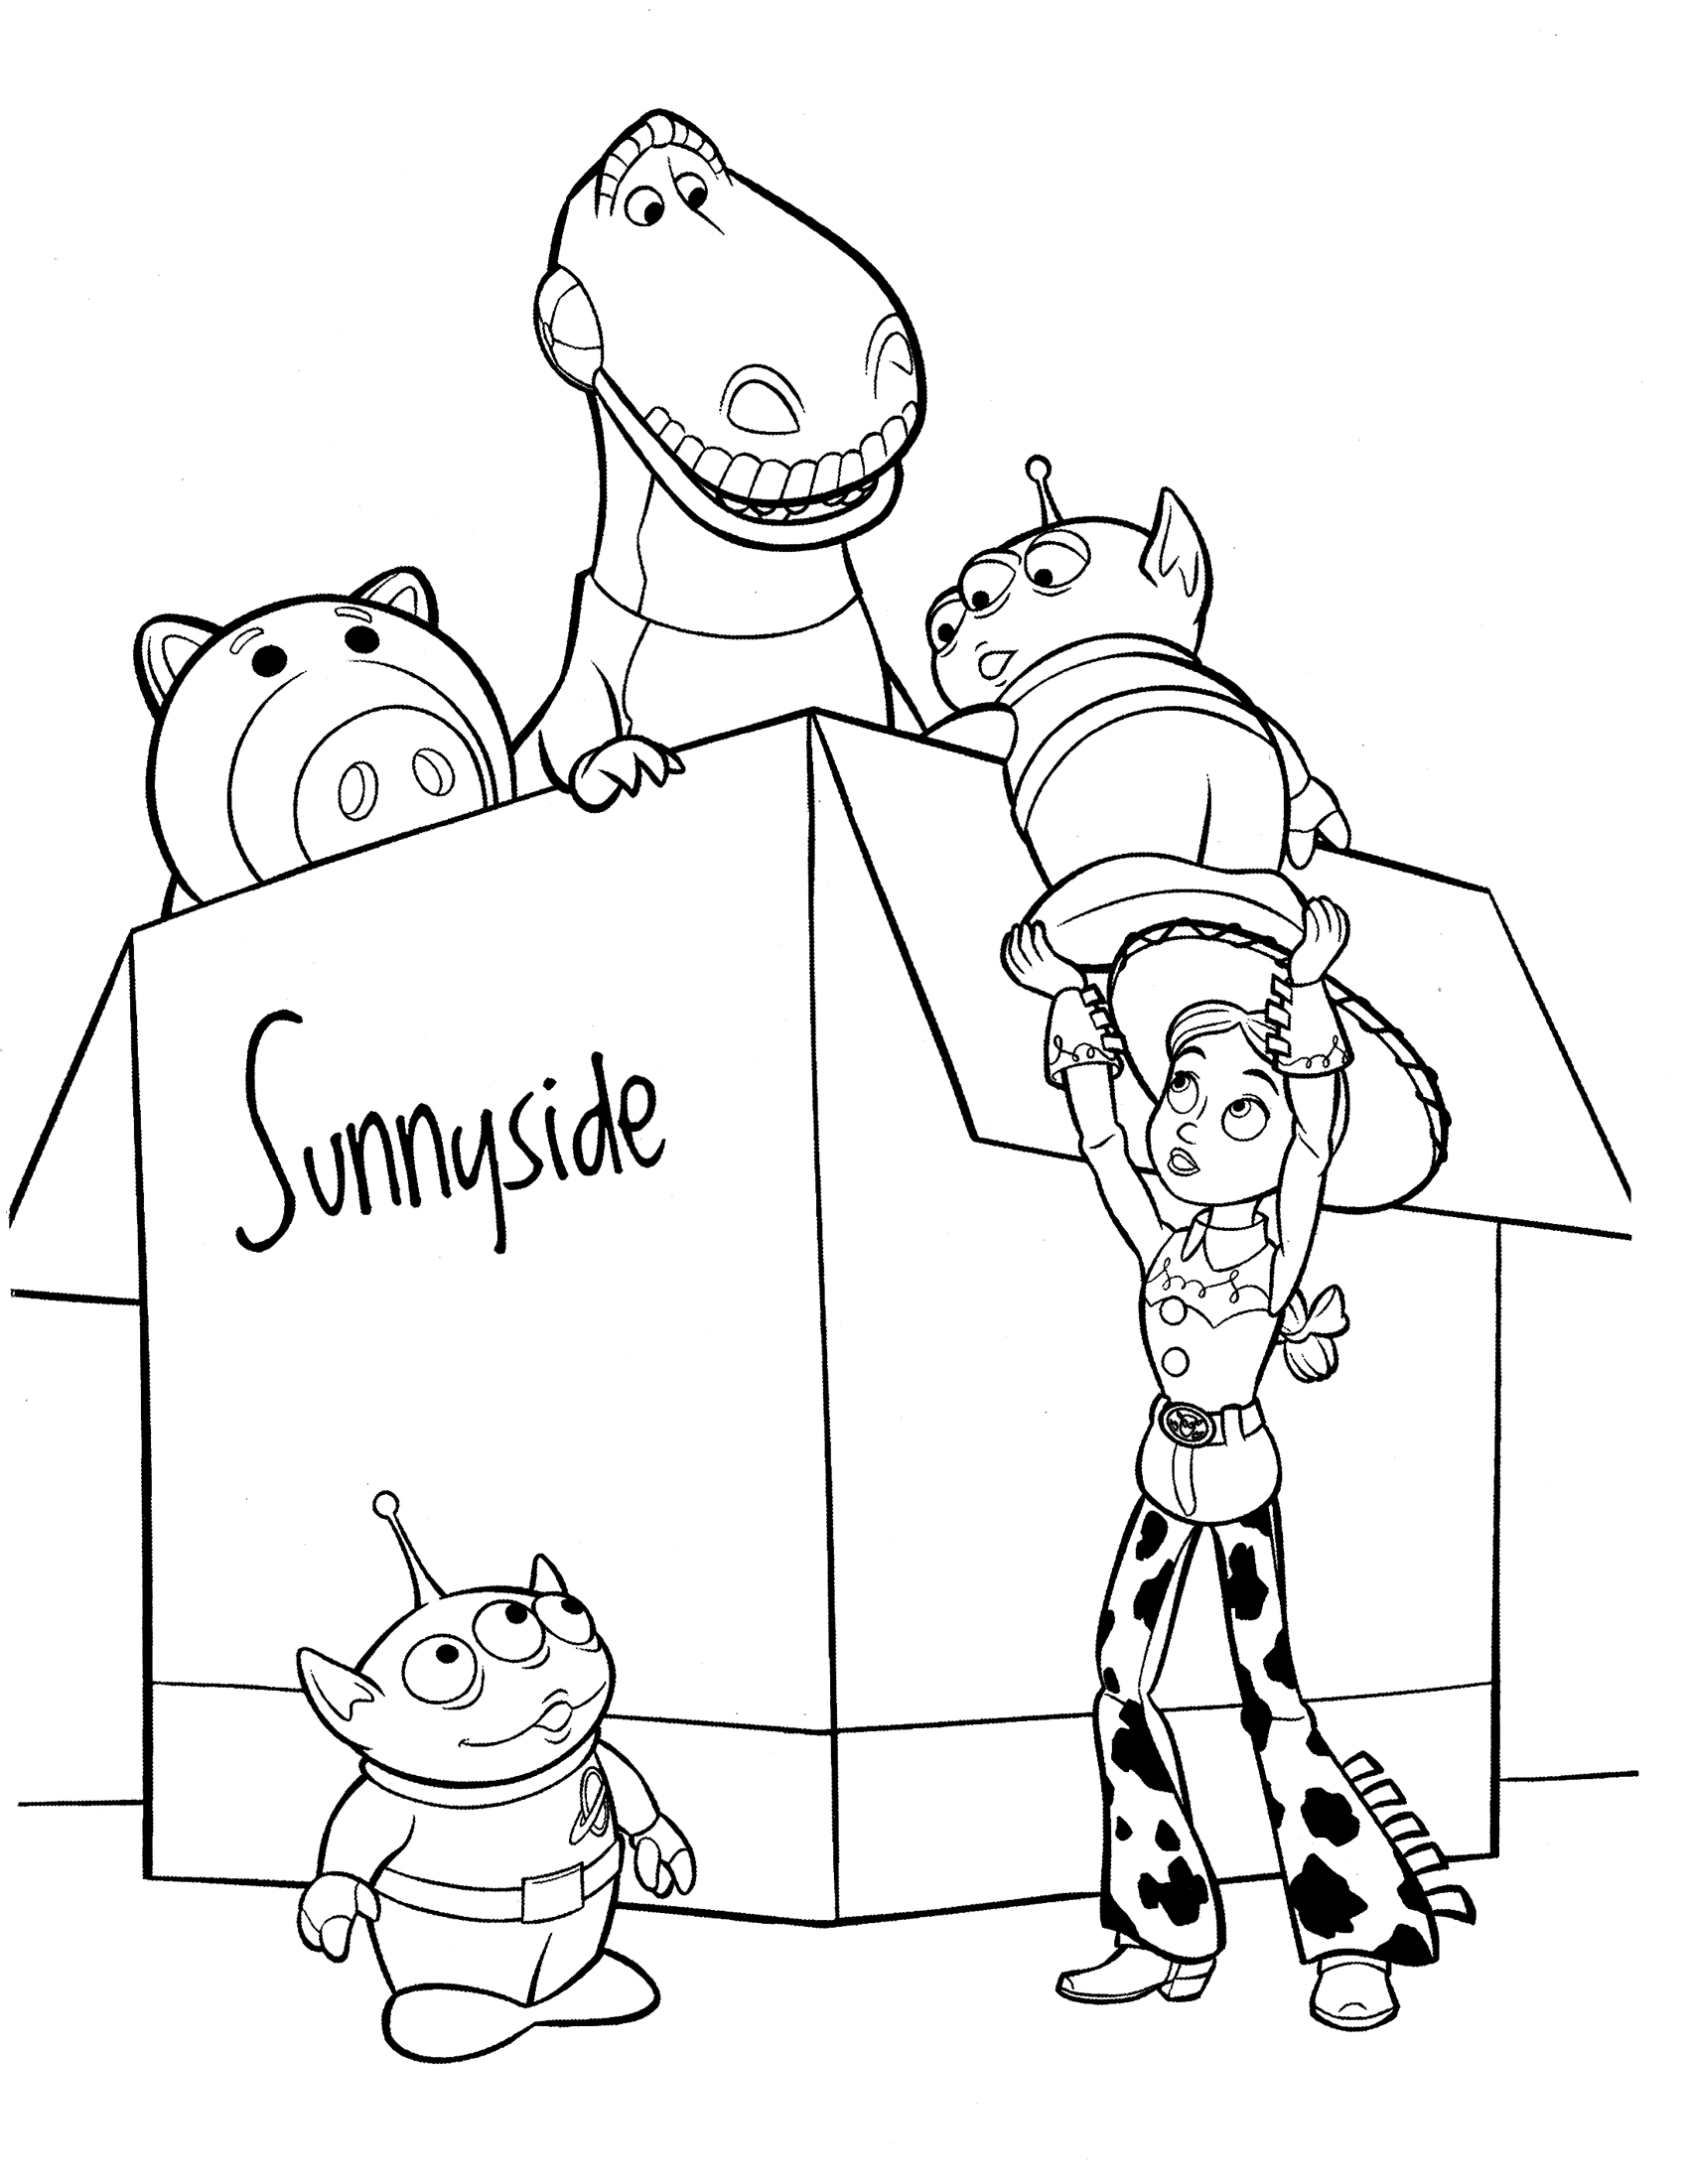 toy story 4 coloring toy story 4 coloring pages best coloring pages for kids toy 4 story coloring